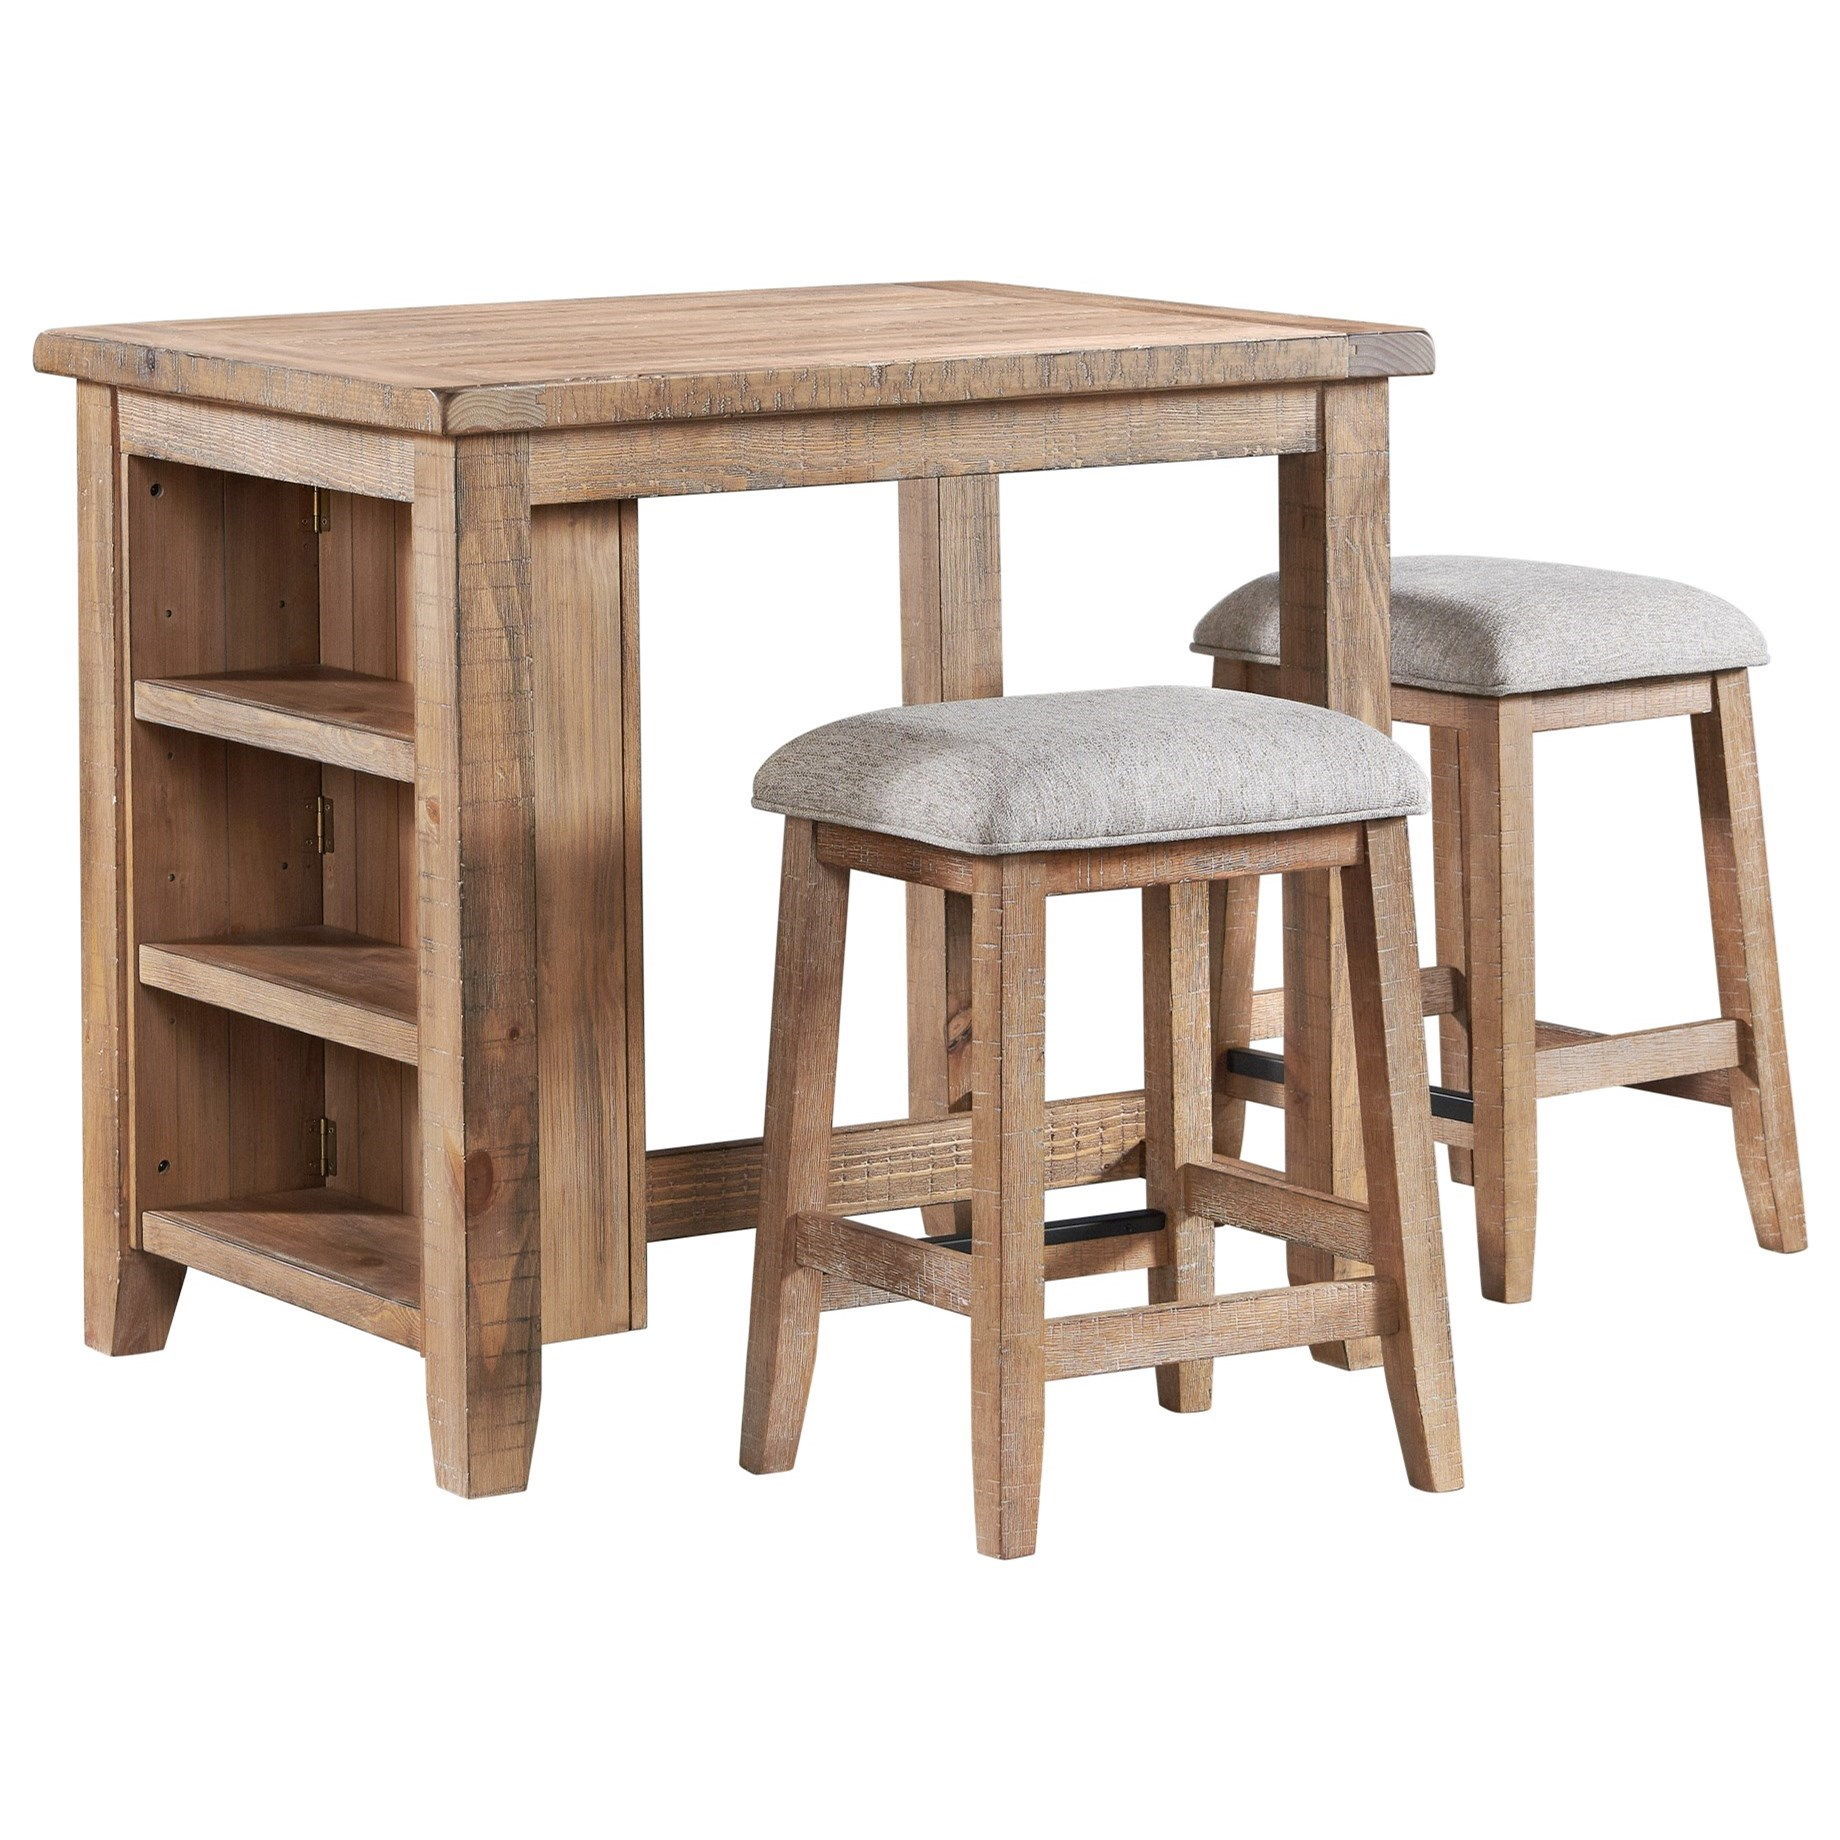 Highland 3-Piece Counter Height Table and Chair Set by Intercon at Dinette Depot